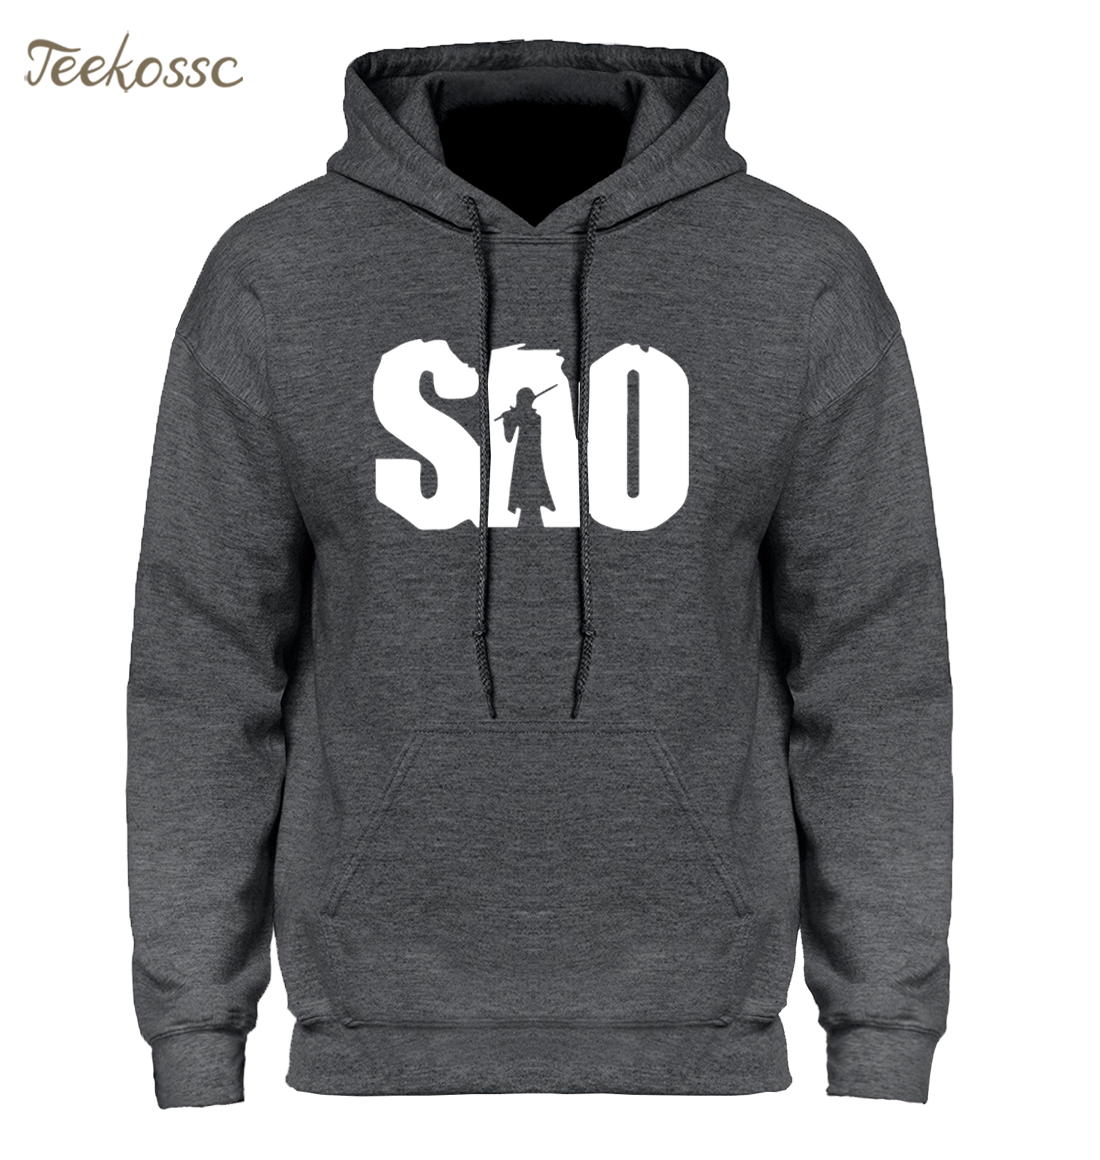 Japan Anime Sword Art Online SAO Hoodies Men Warm Fleece Simple Sweatshirt Men Hoody Harajuku Hoodie Hombre Loose Sweatshirts